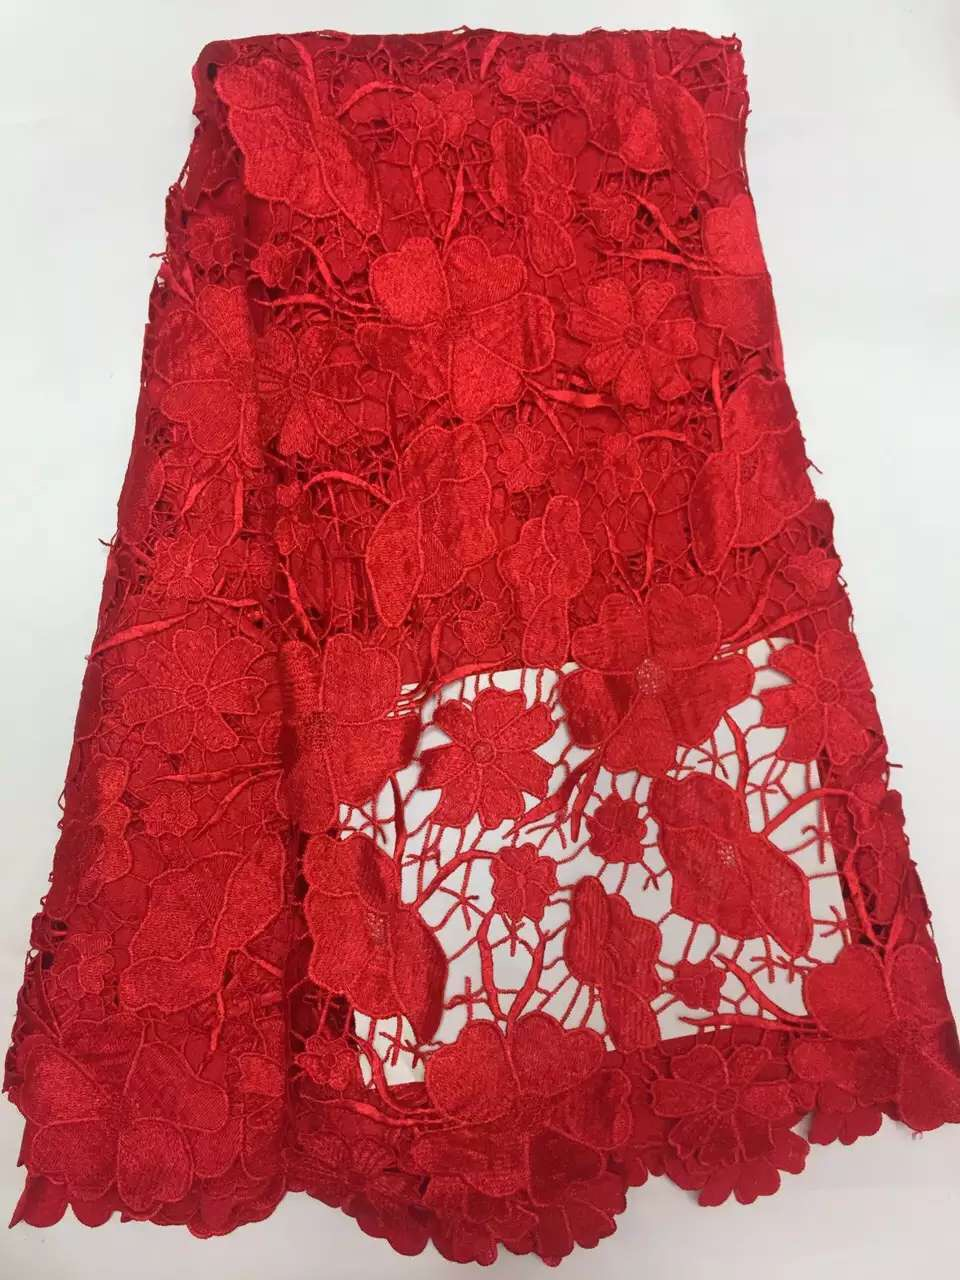 Hot High Quality  African Water soluble lace  Guipure Cord Lace - Arts, Crafts and Sewing - Photo 1